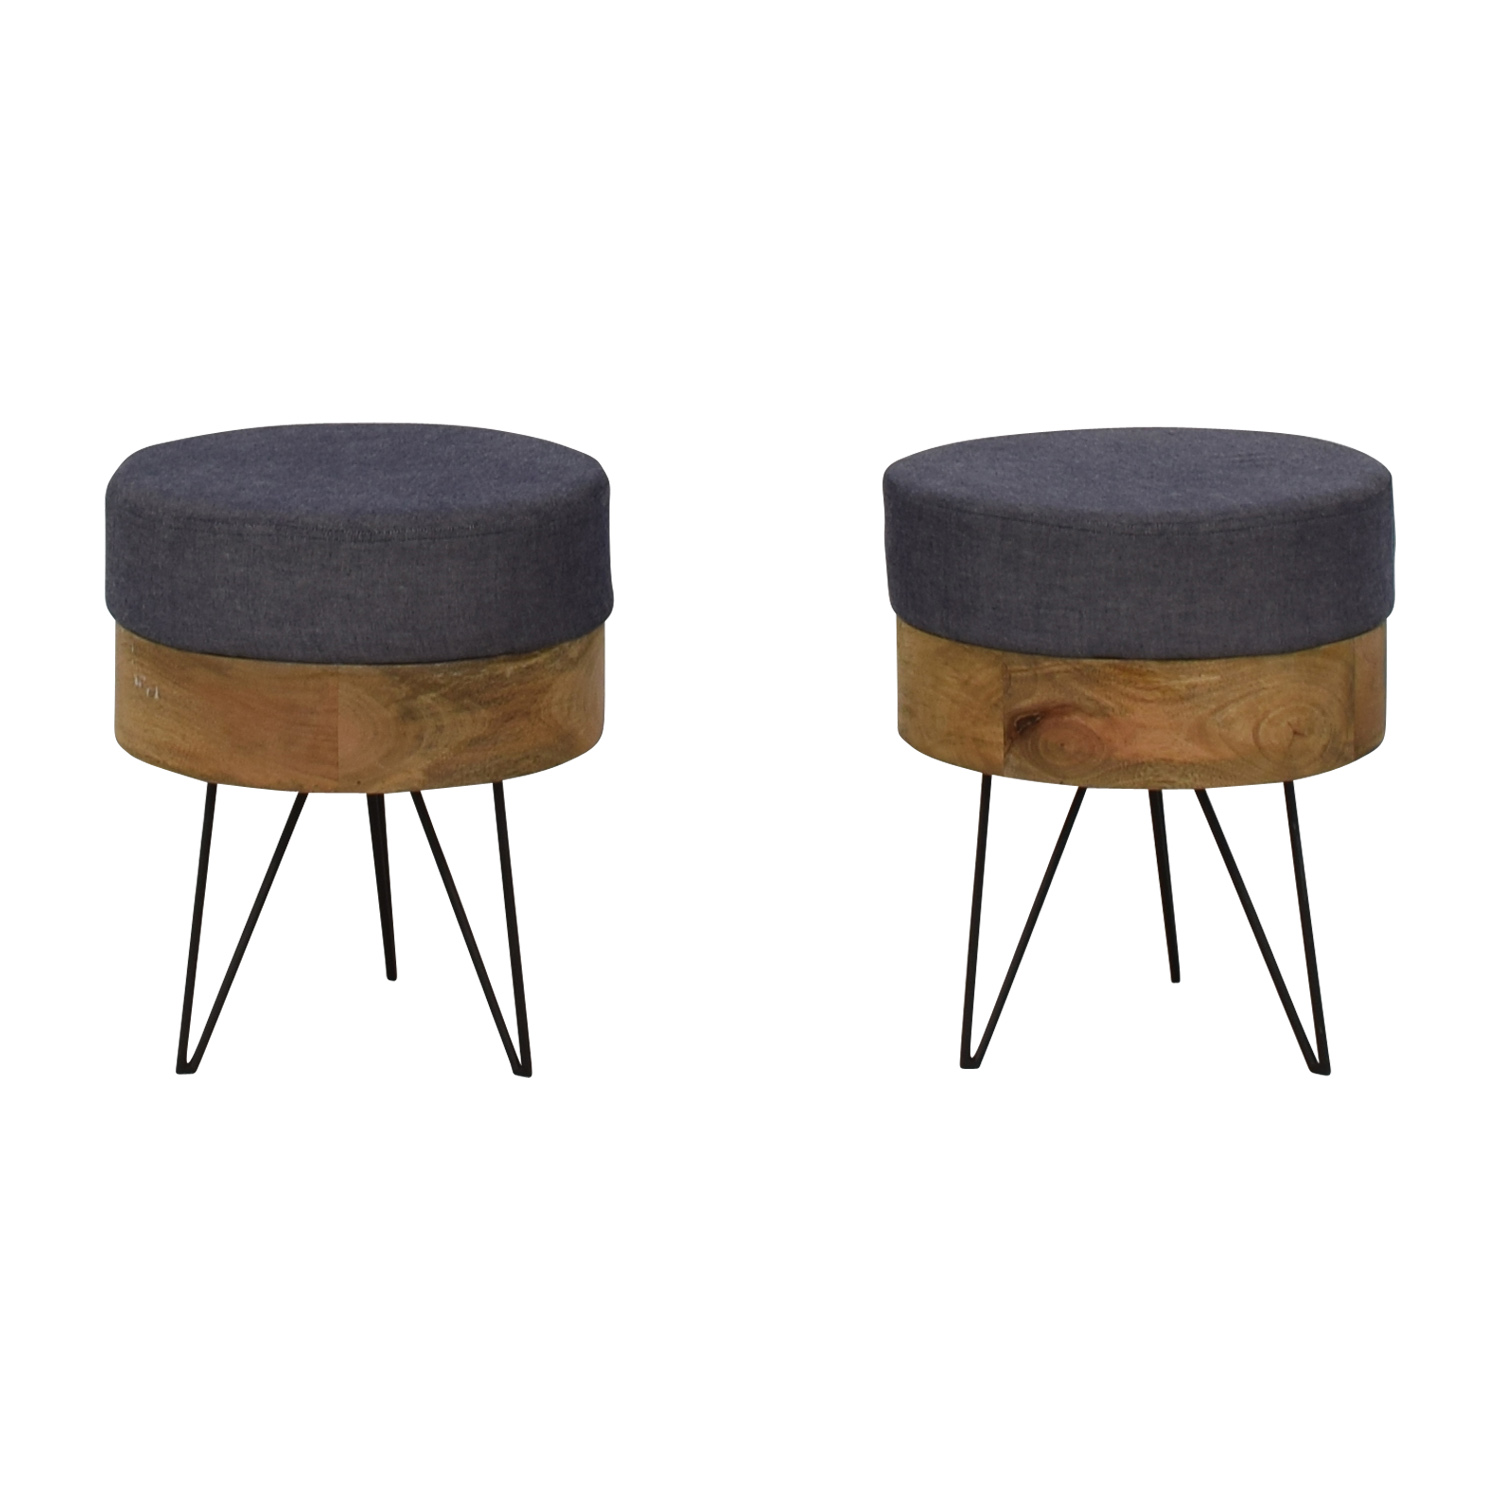 Moe's Home Moe's Home Collection Chambray and Wood Round Stools on sale